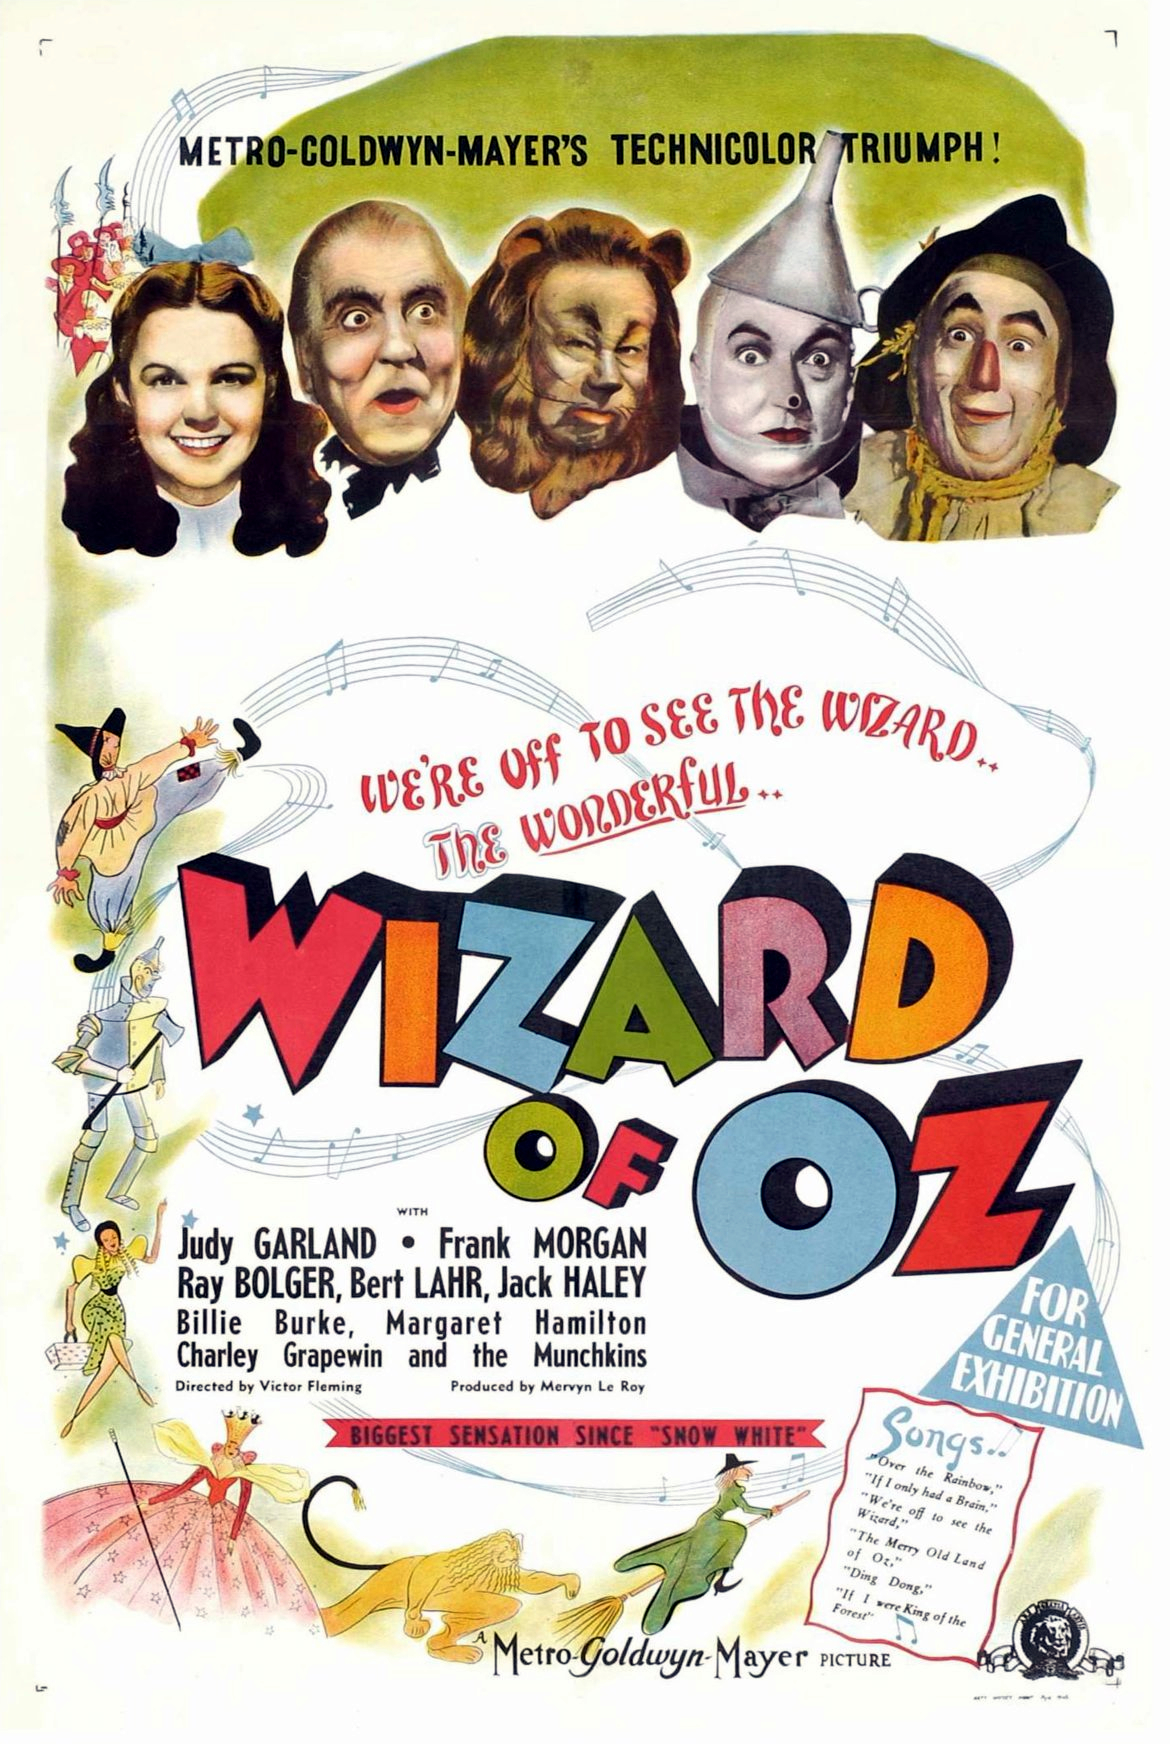 The Wizard of Oz Review